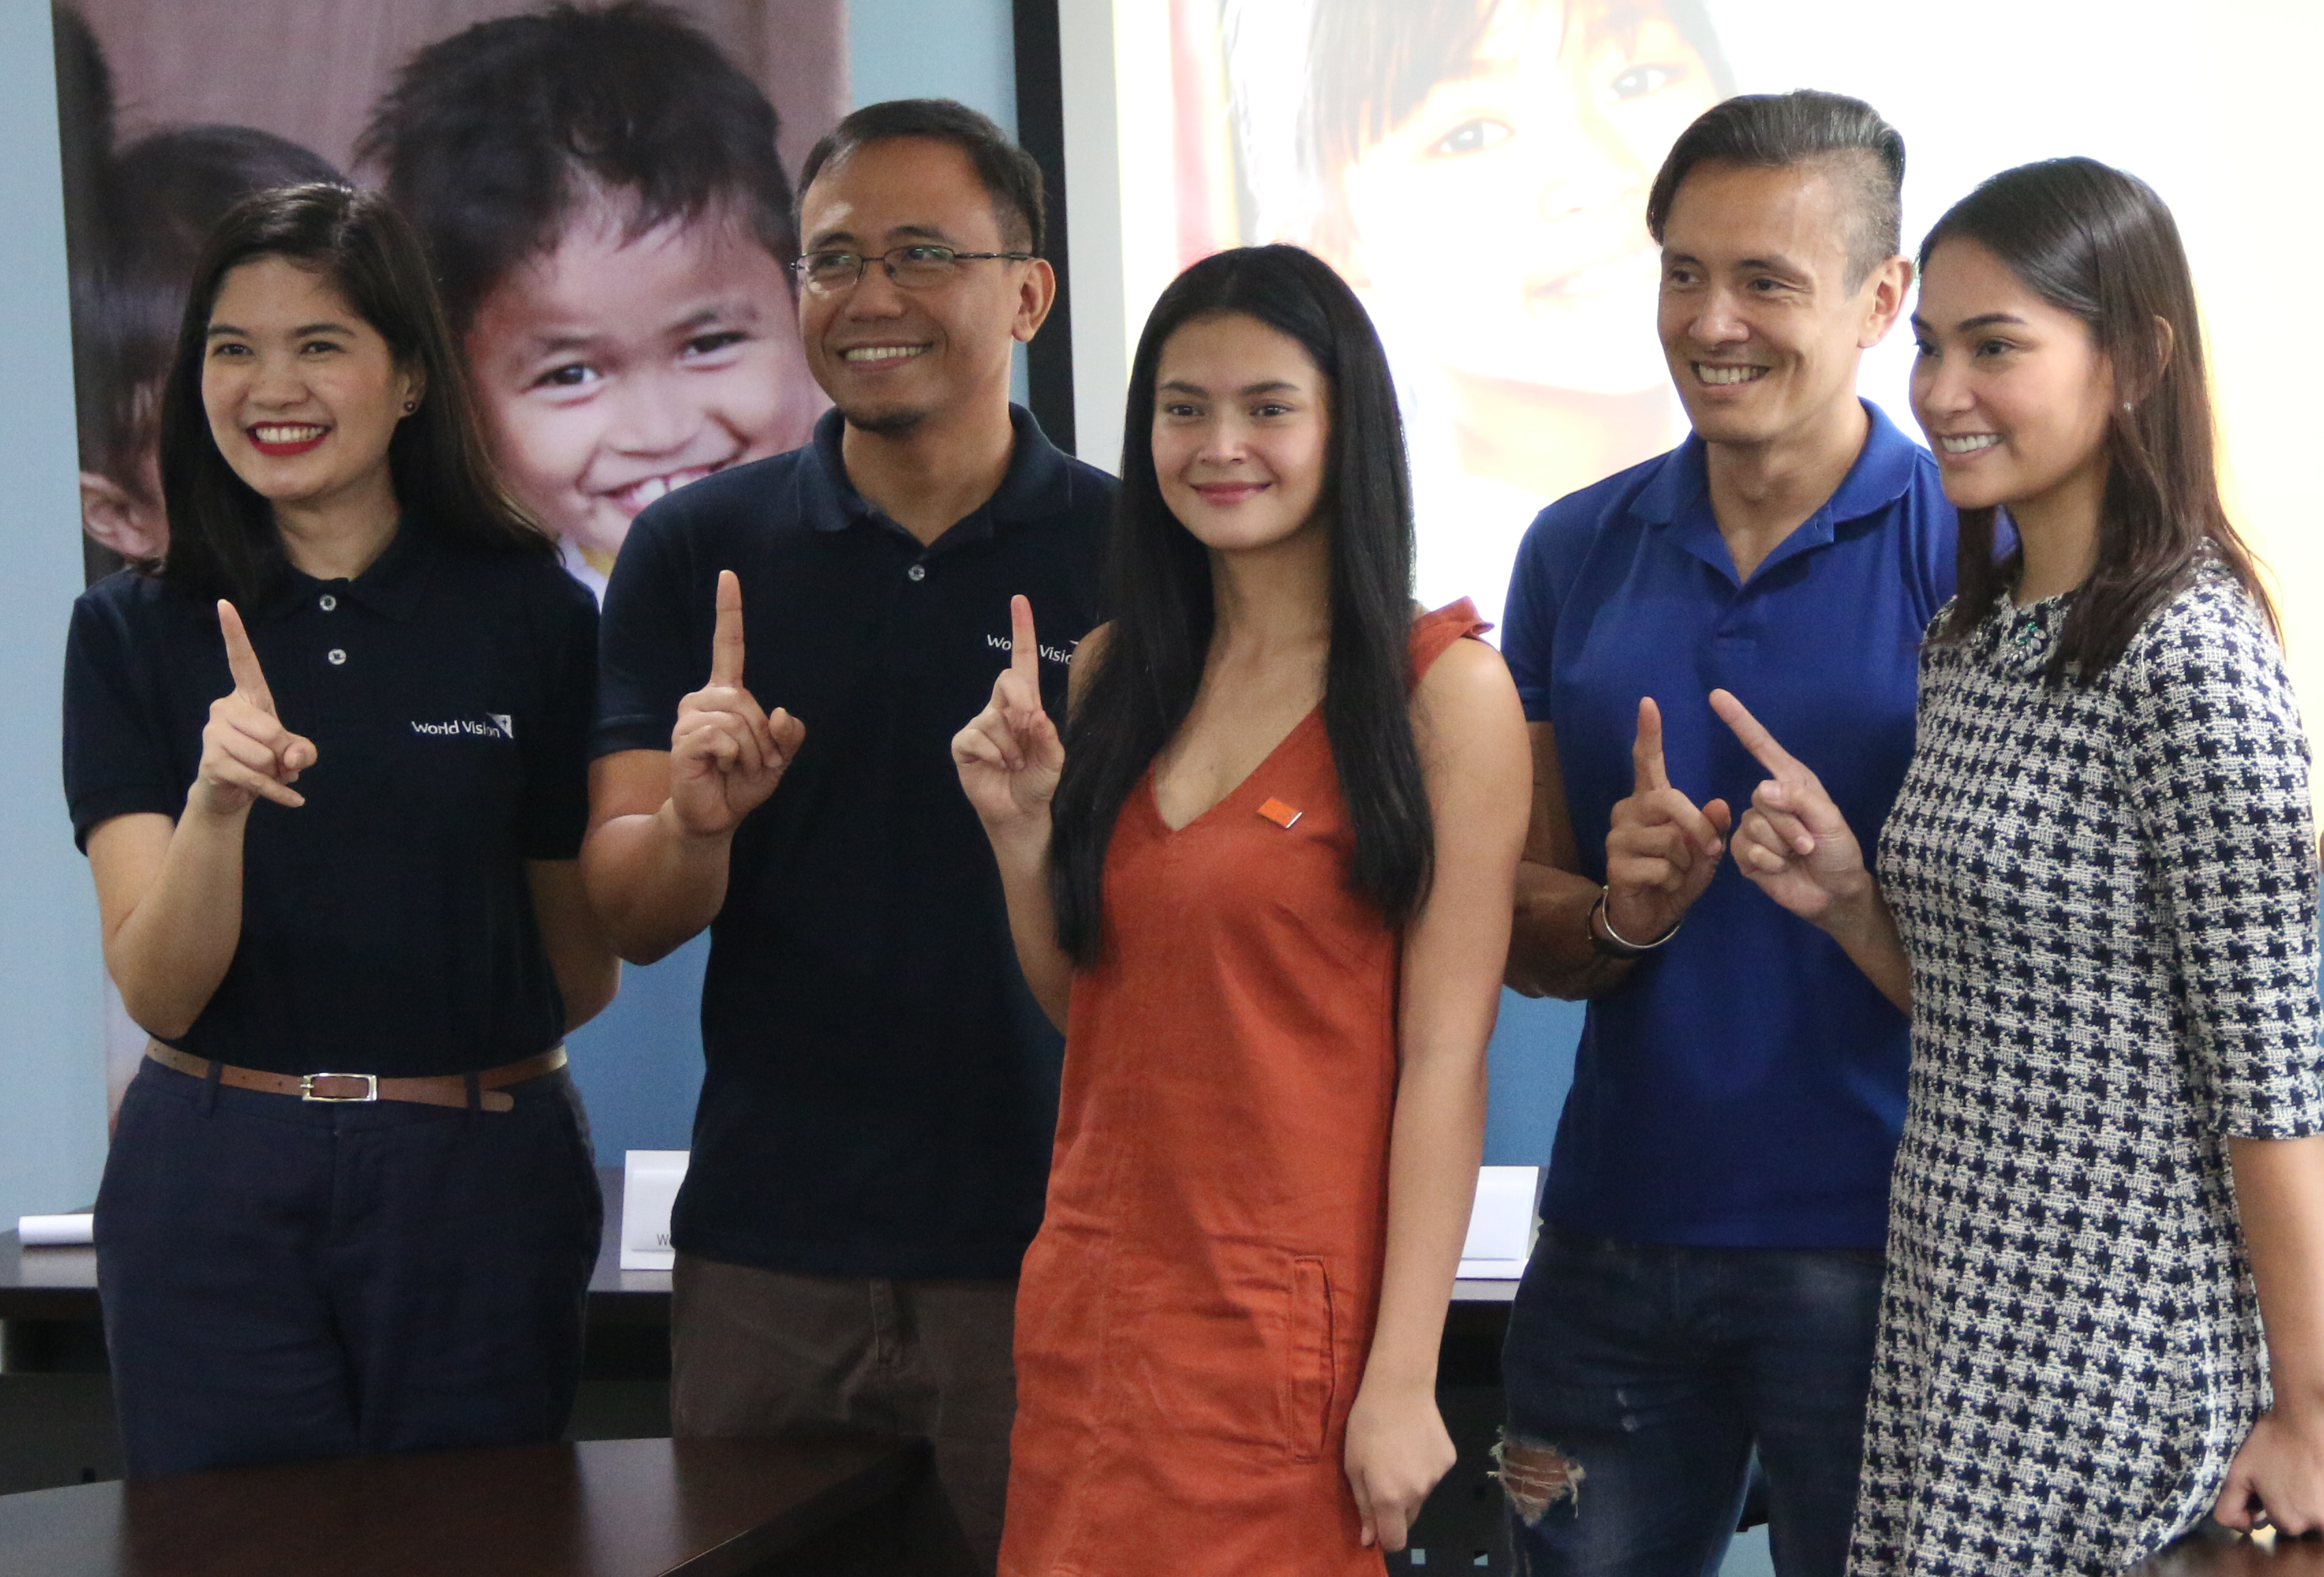 World Vision launches 1,000 Girls campaign with Bianca Umali, Victor Consunji and Enrico Menichetti